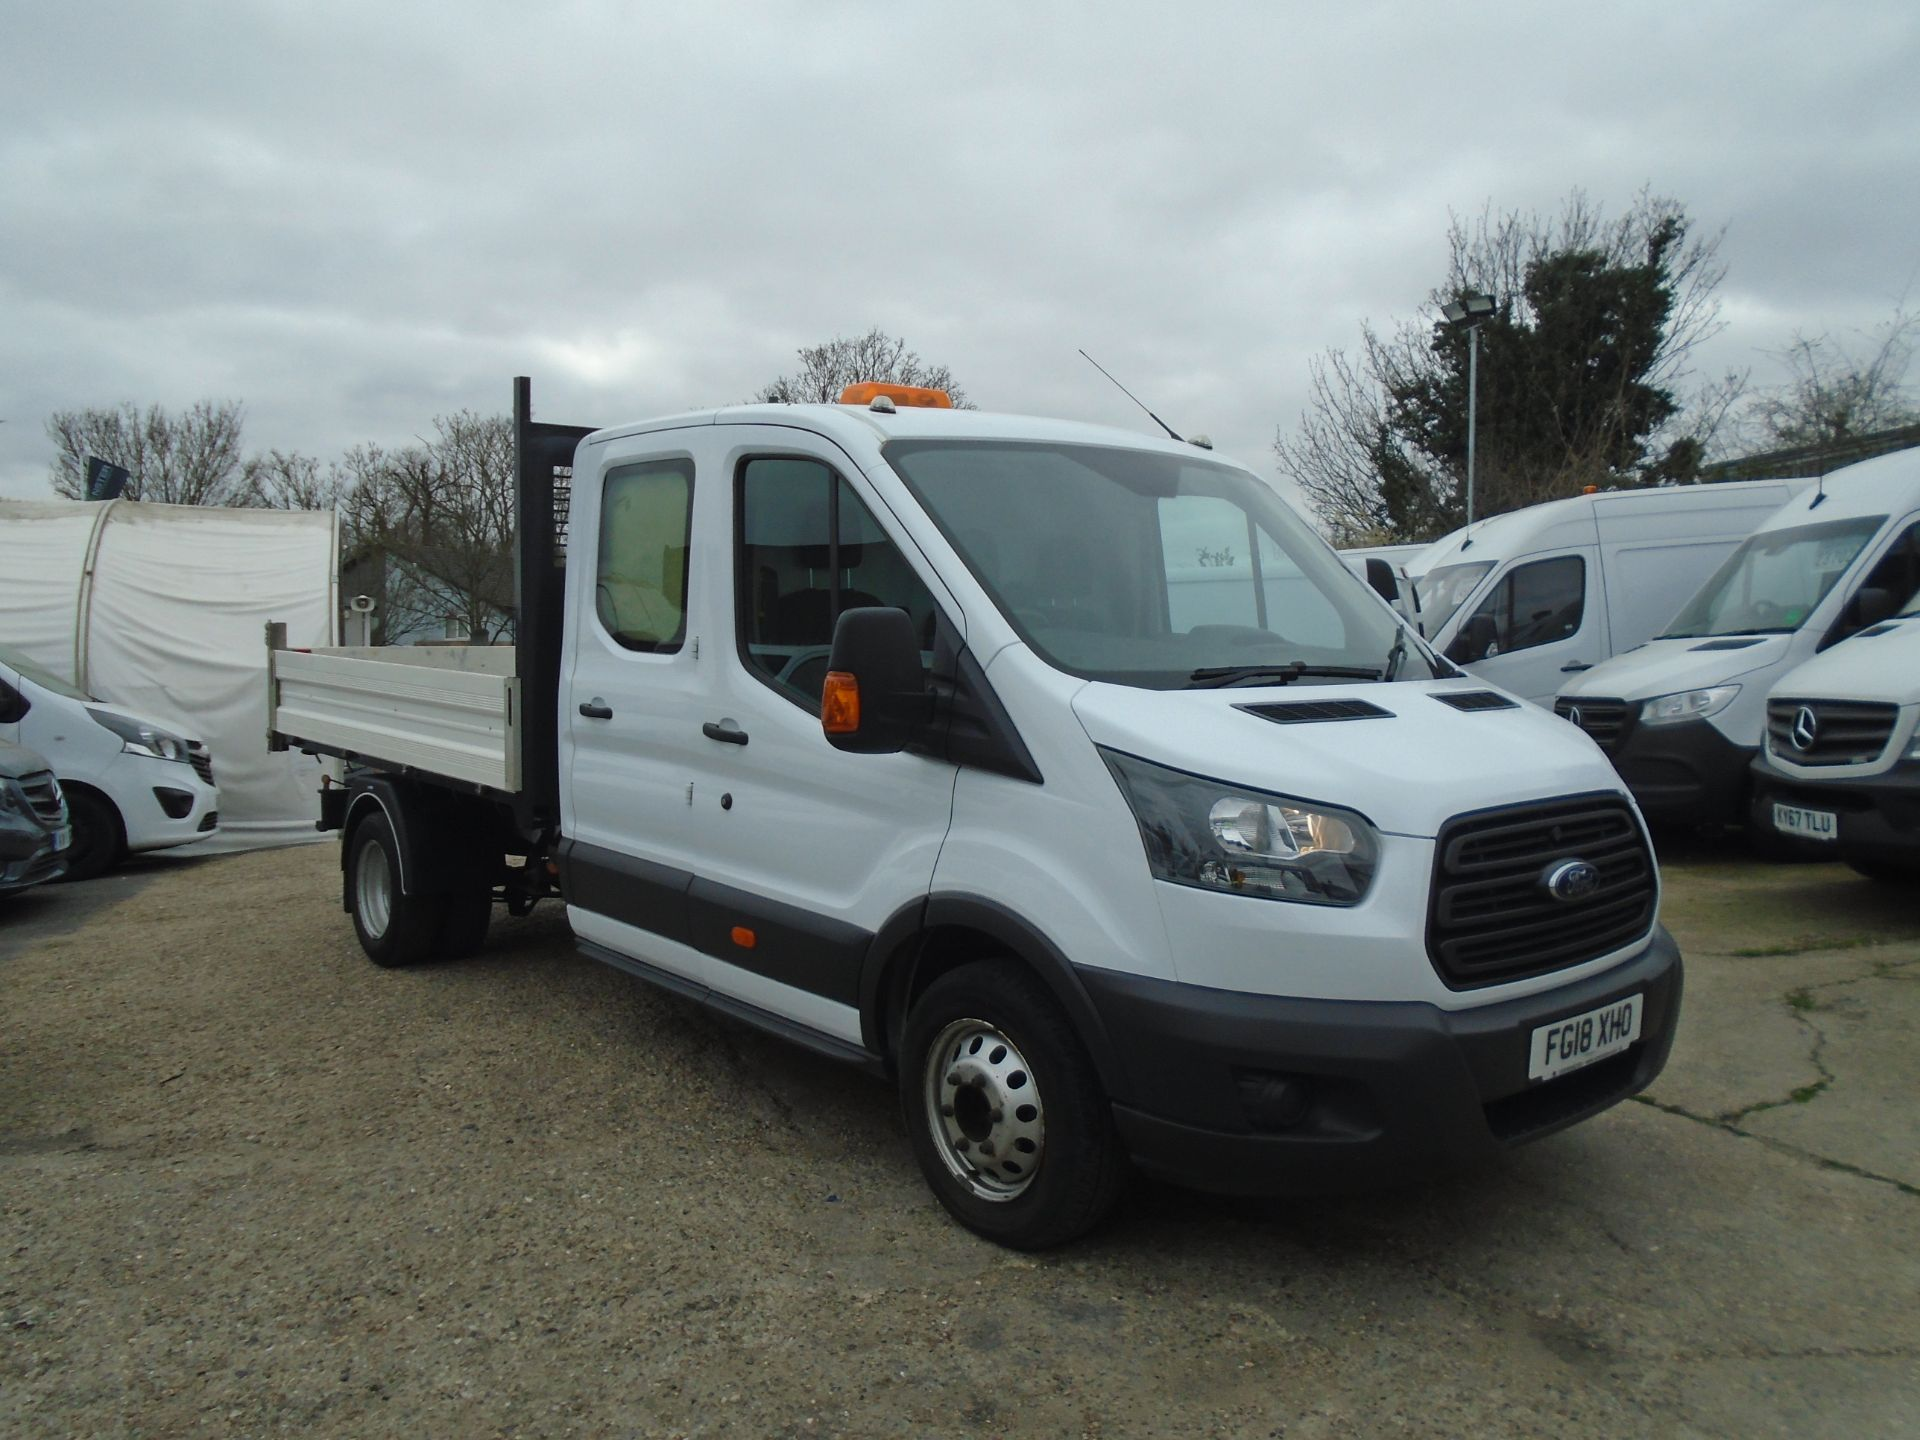 2018 Ford Transit 2.0 Tdci 130Ps Double Cab Chassis (FG18XHO)